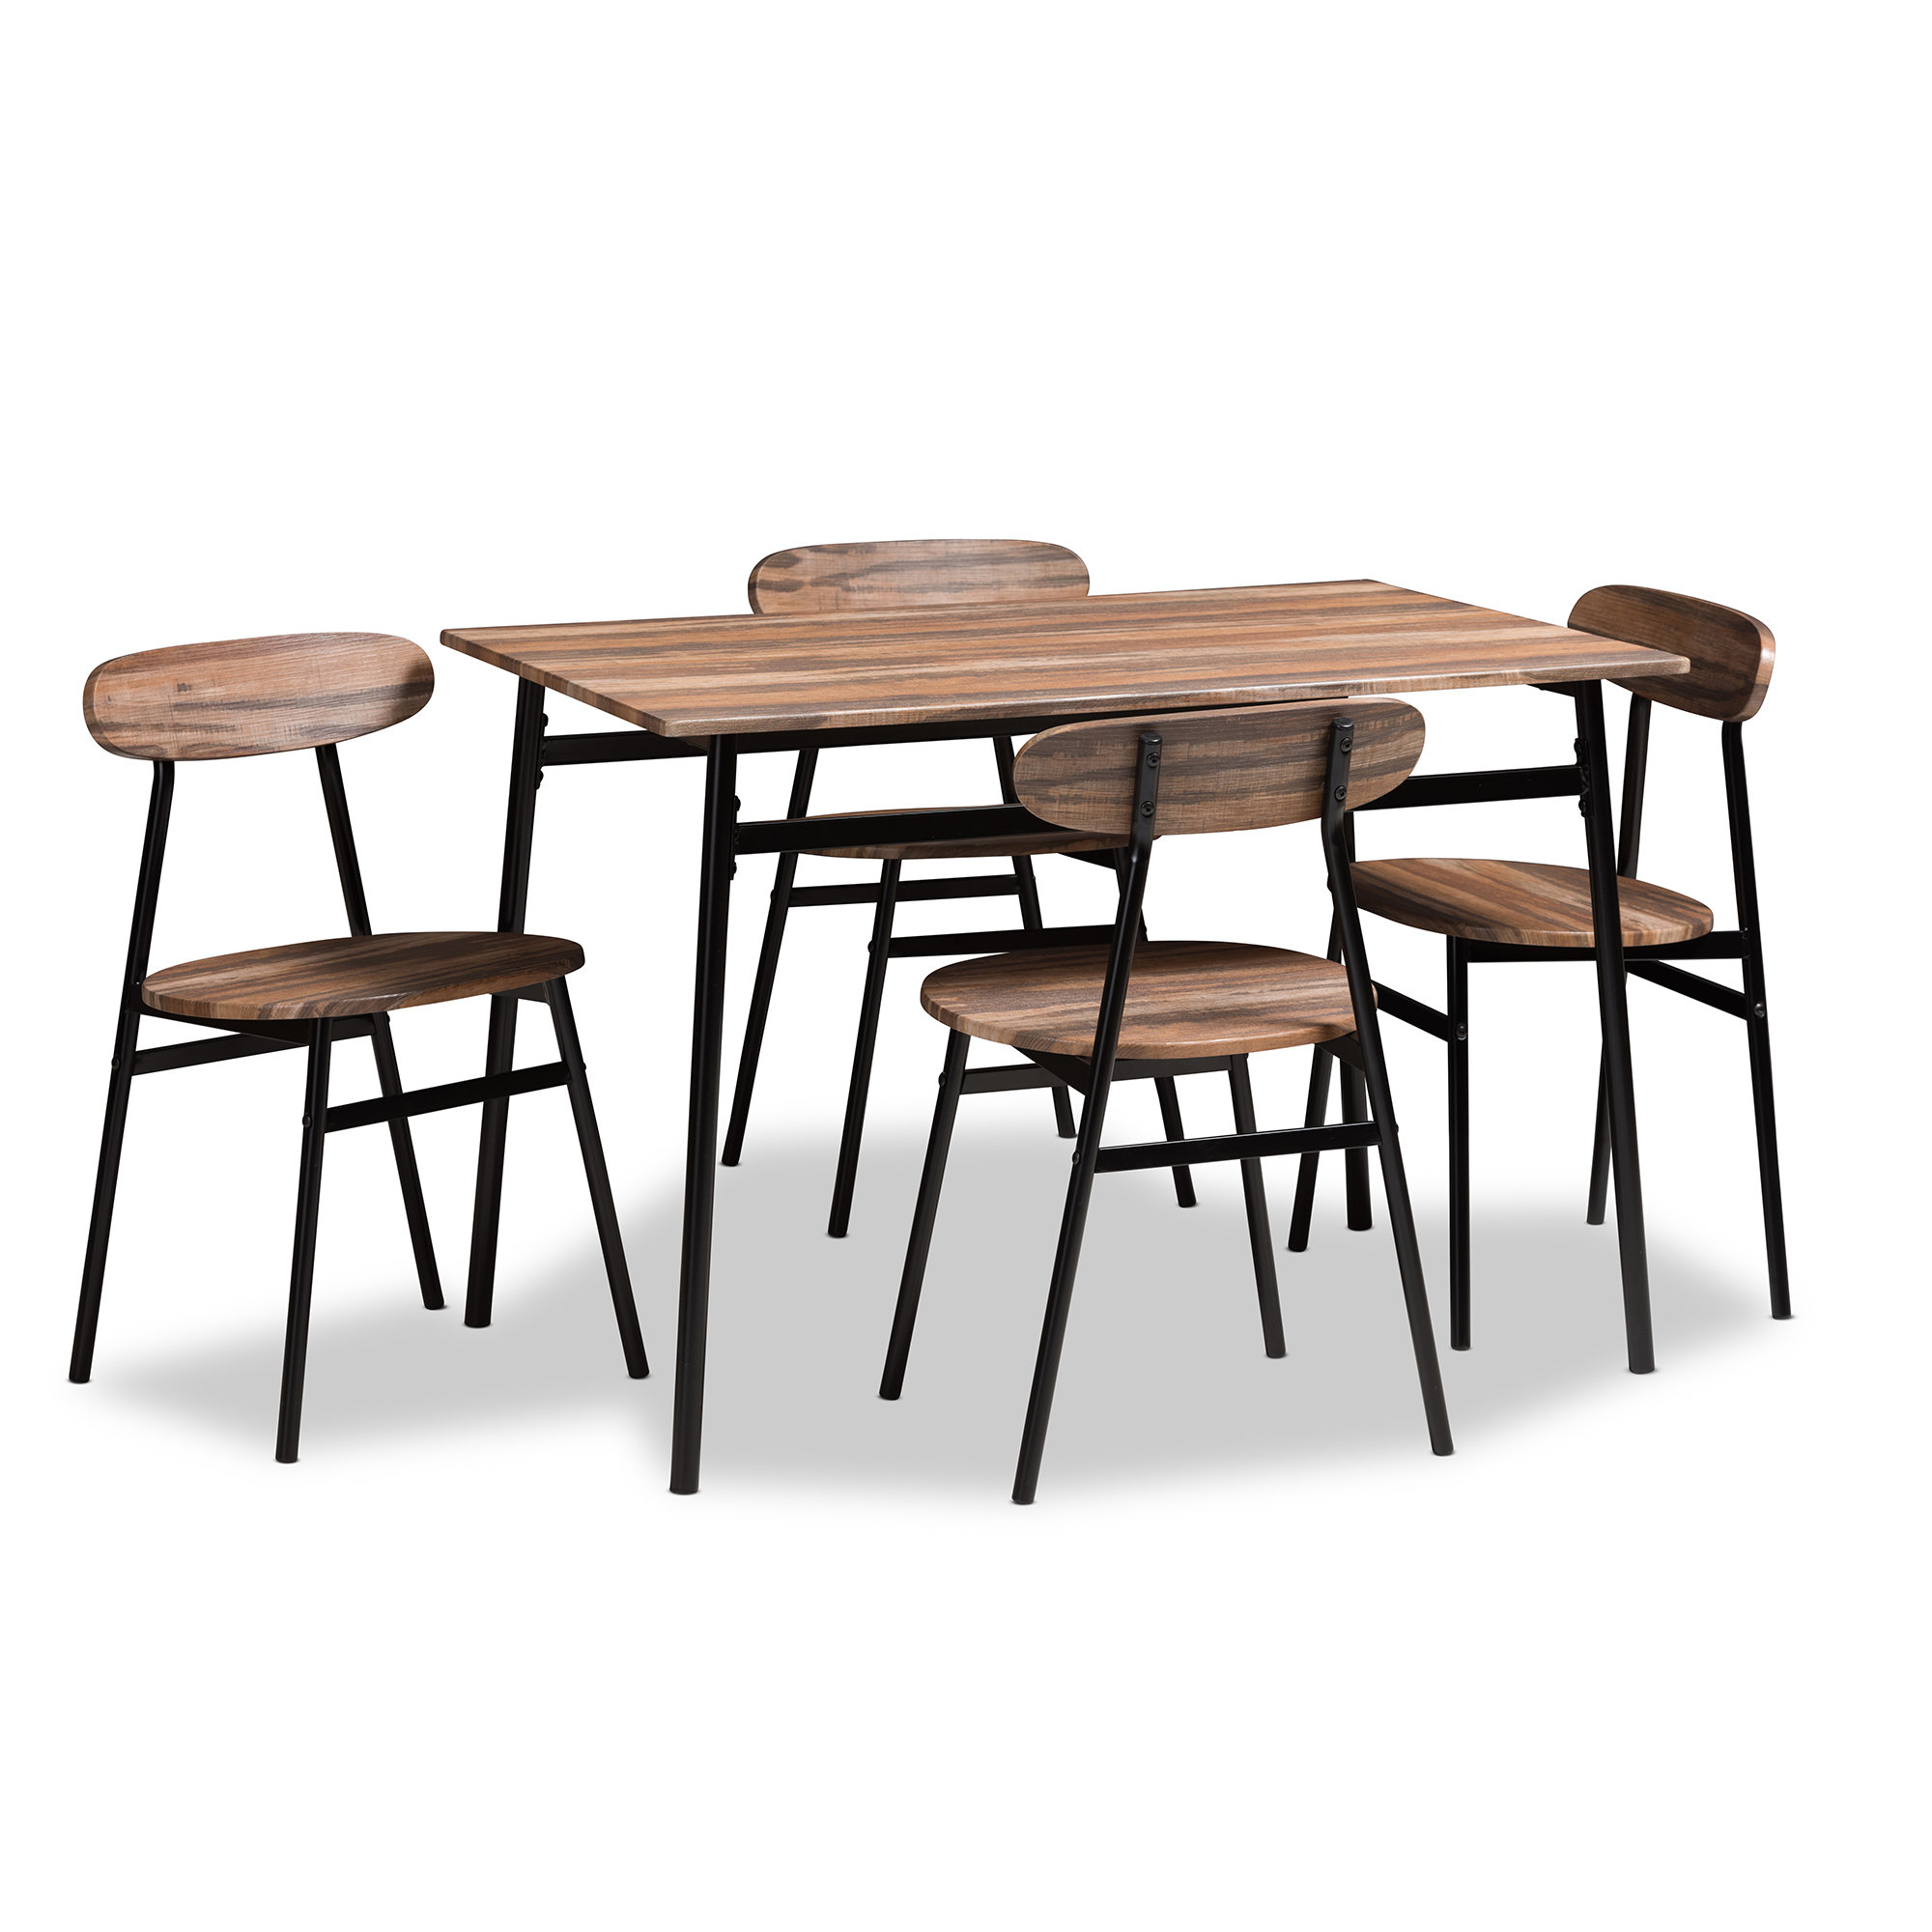 Telauges 5 Piece Dining Sets With Regard To Newest Telauges 5 Piece Dining Set (Gallery 1 of 20)